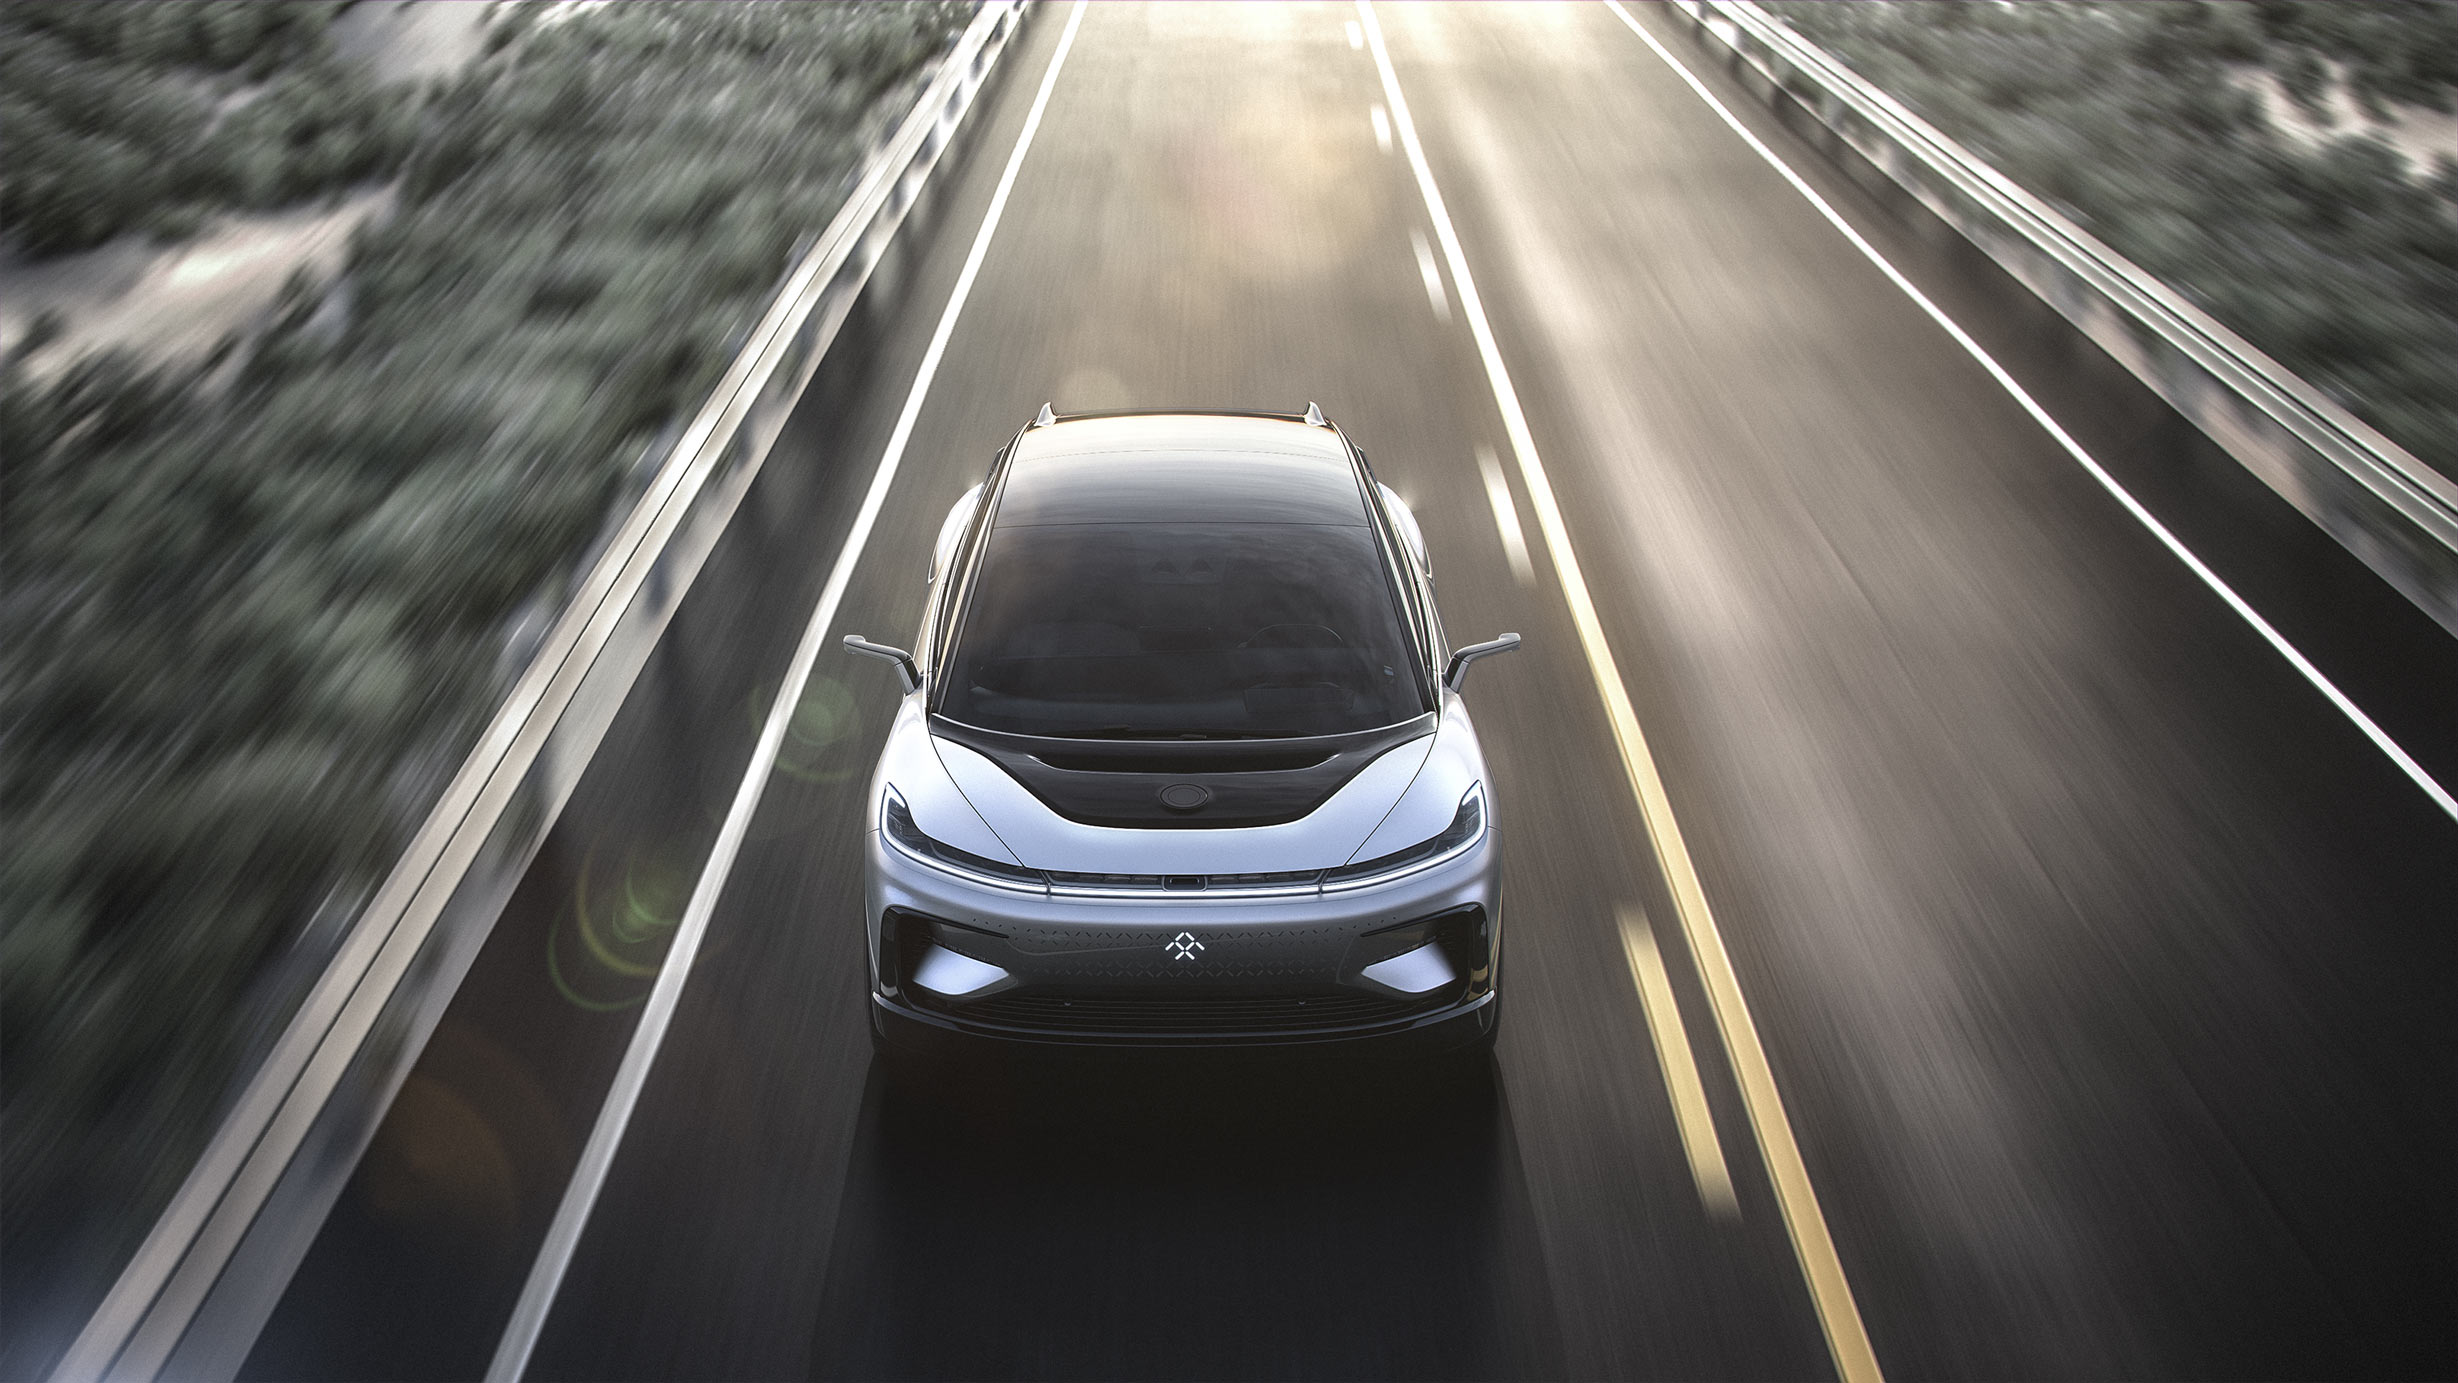 Faraday Future Confirms 2 Billion In First Round Funding Clears